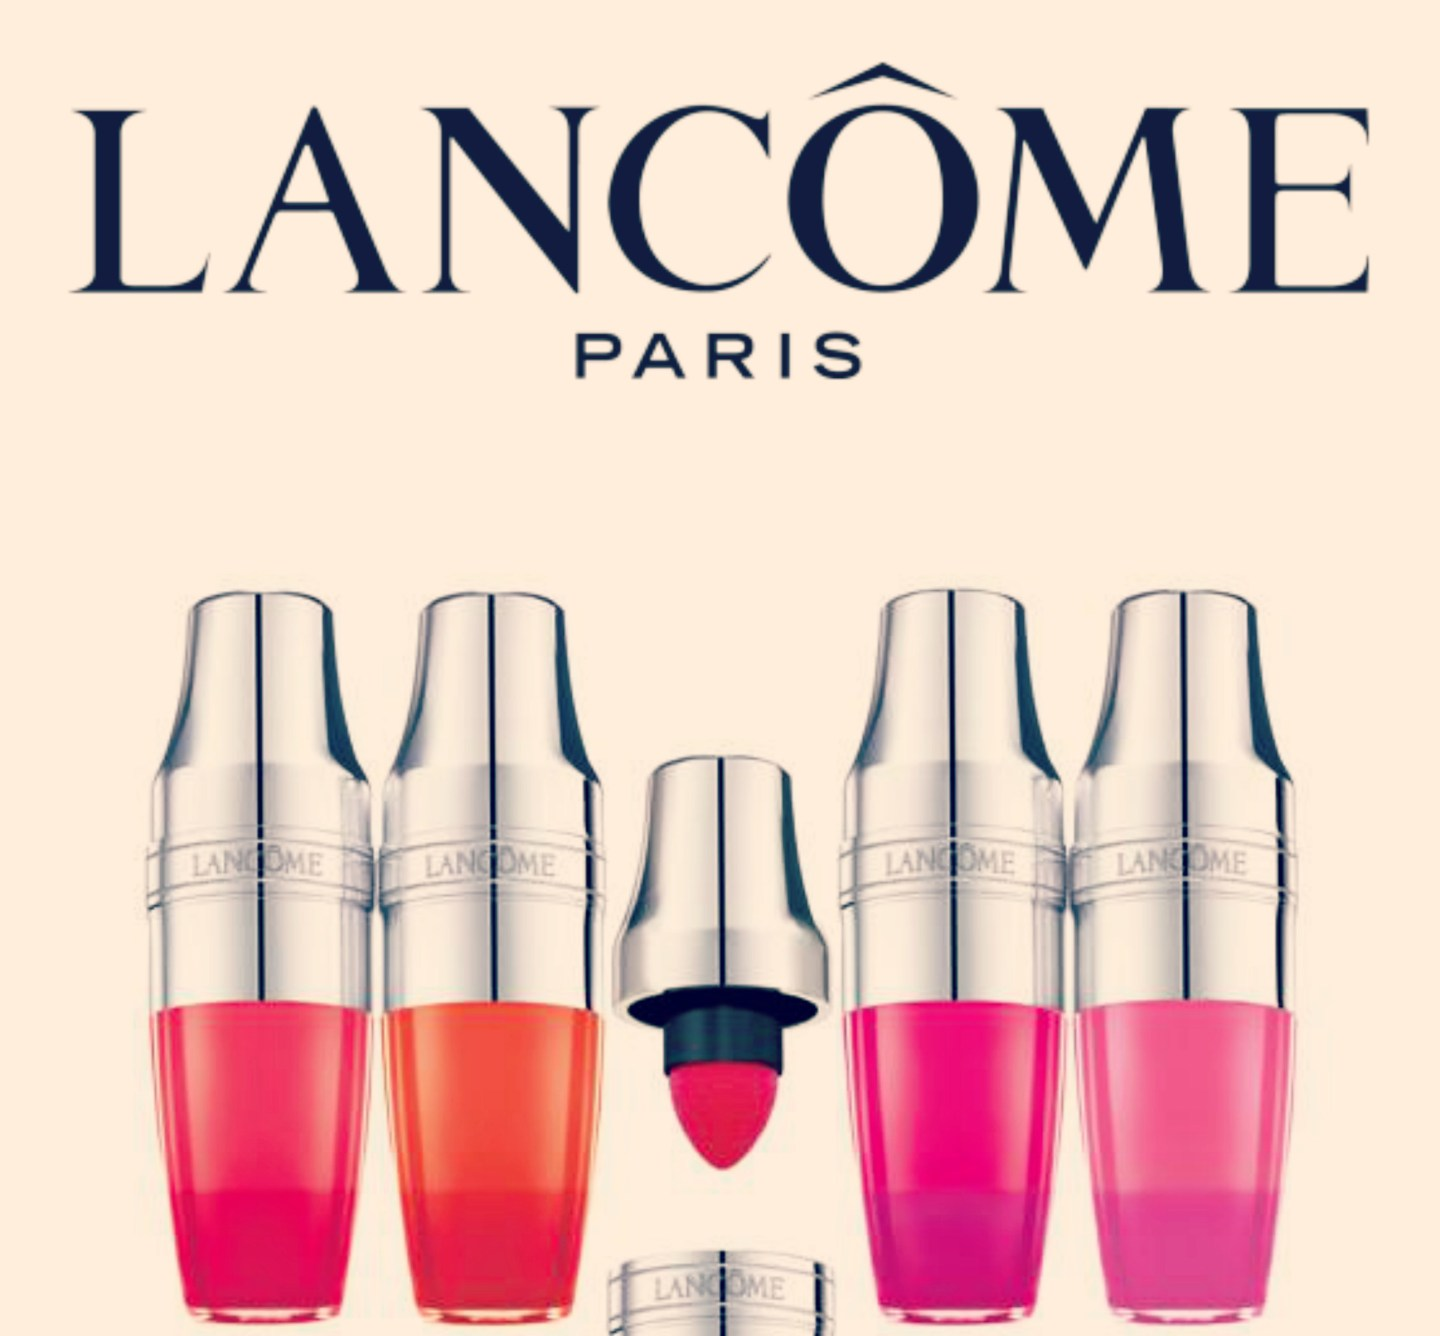 Lancome introduces new Juicy Shakers